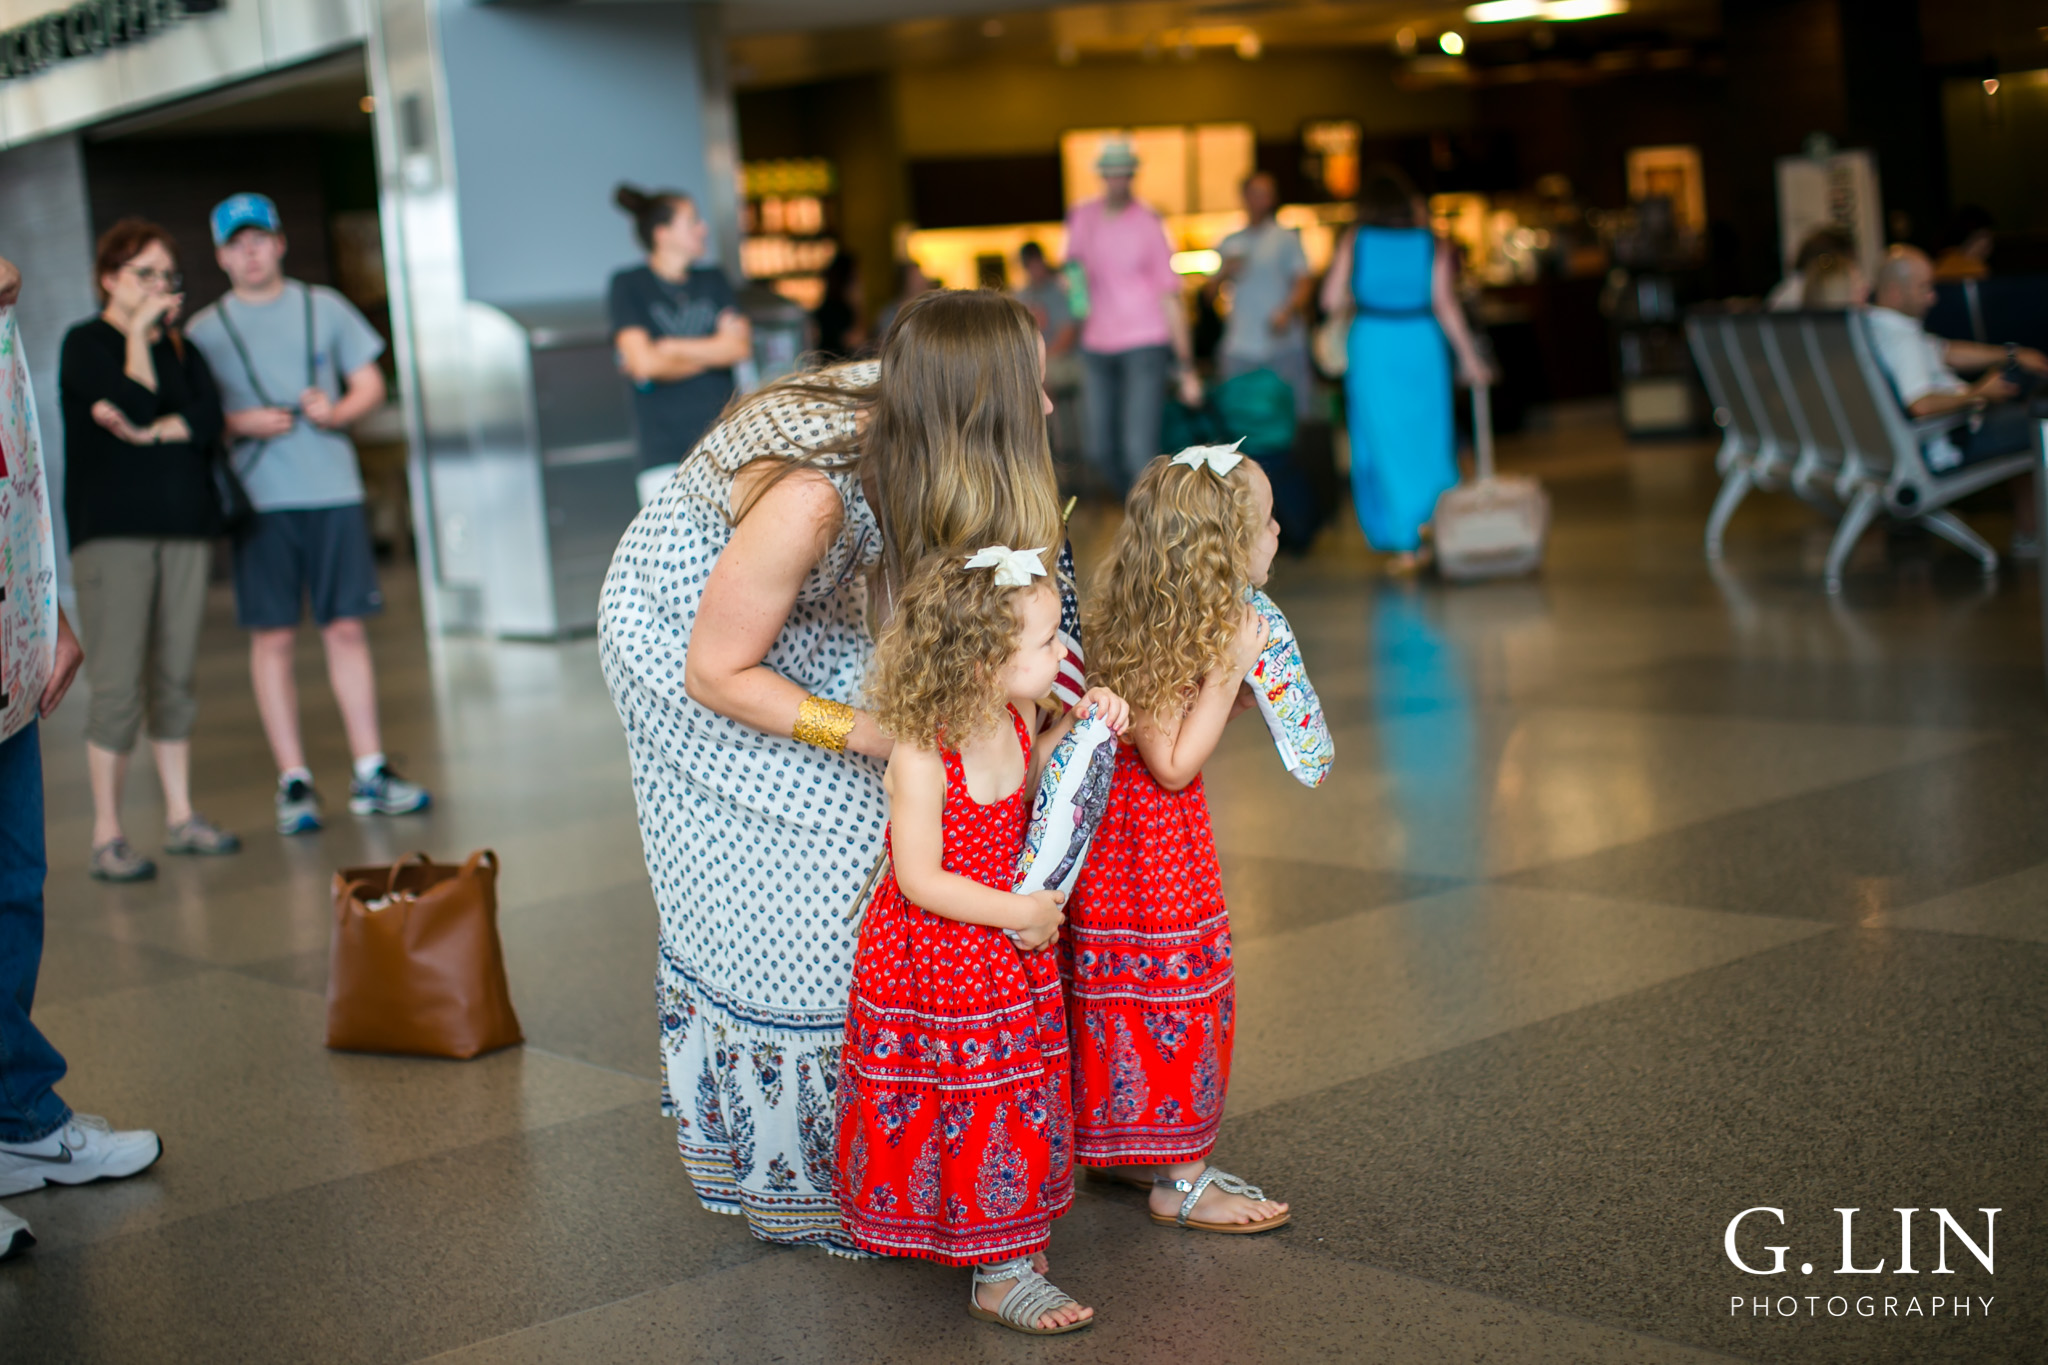 Raleigh Family Photographer | G. Lin Photography | girls and mom waiting for their dad at terminal